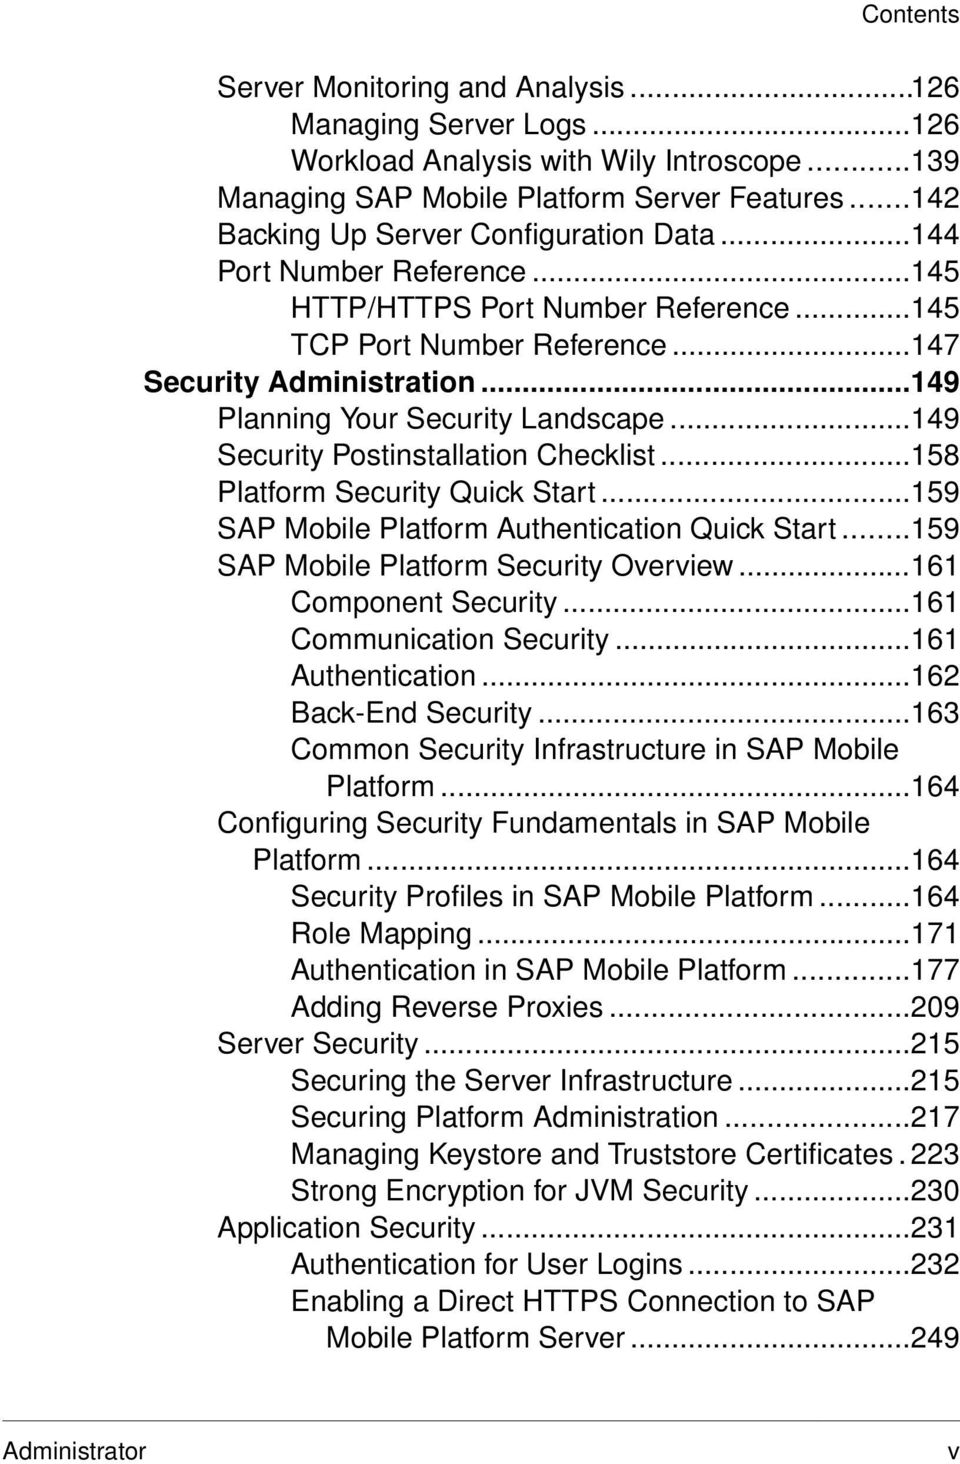 ..149 Planning Your Security Landscape...149 Security Postinstallation Checklist...158 Platform Security Quick Start...159 SAP Mobile Platform Authentication Quick Start.